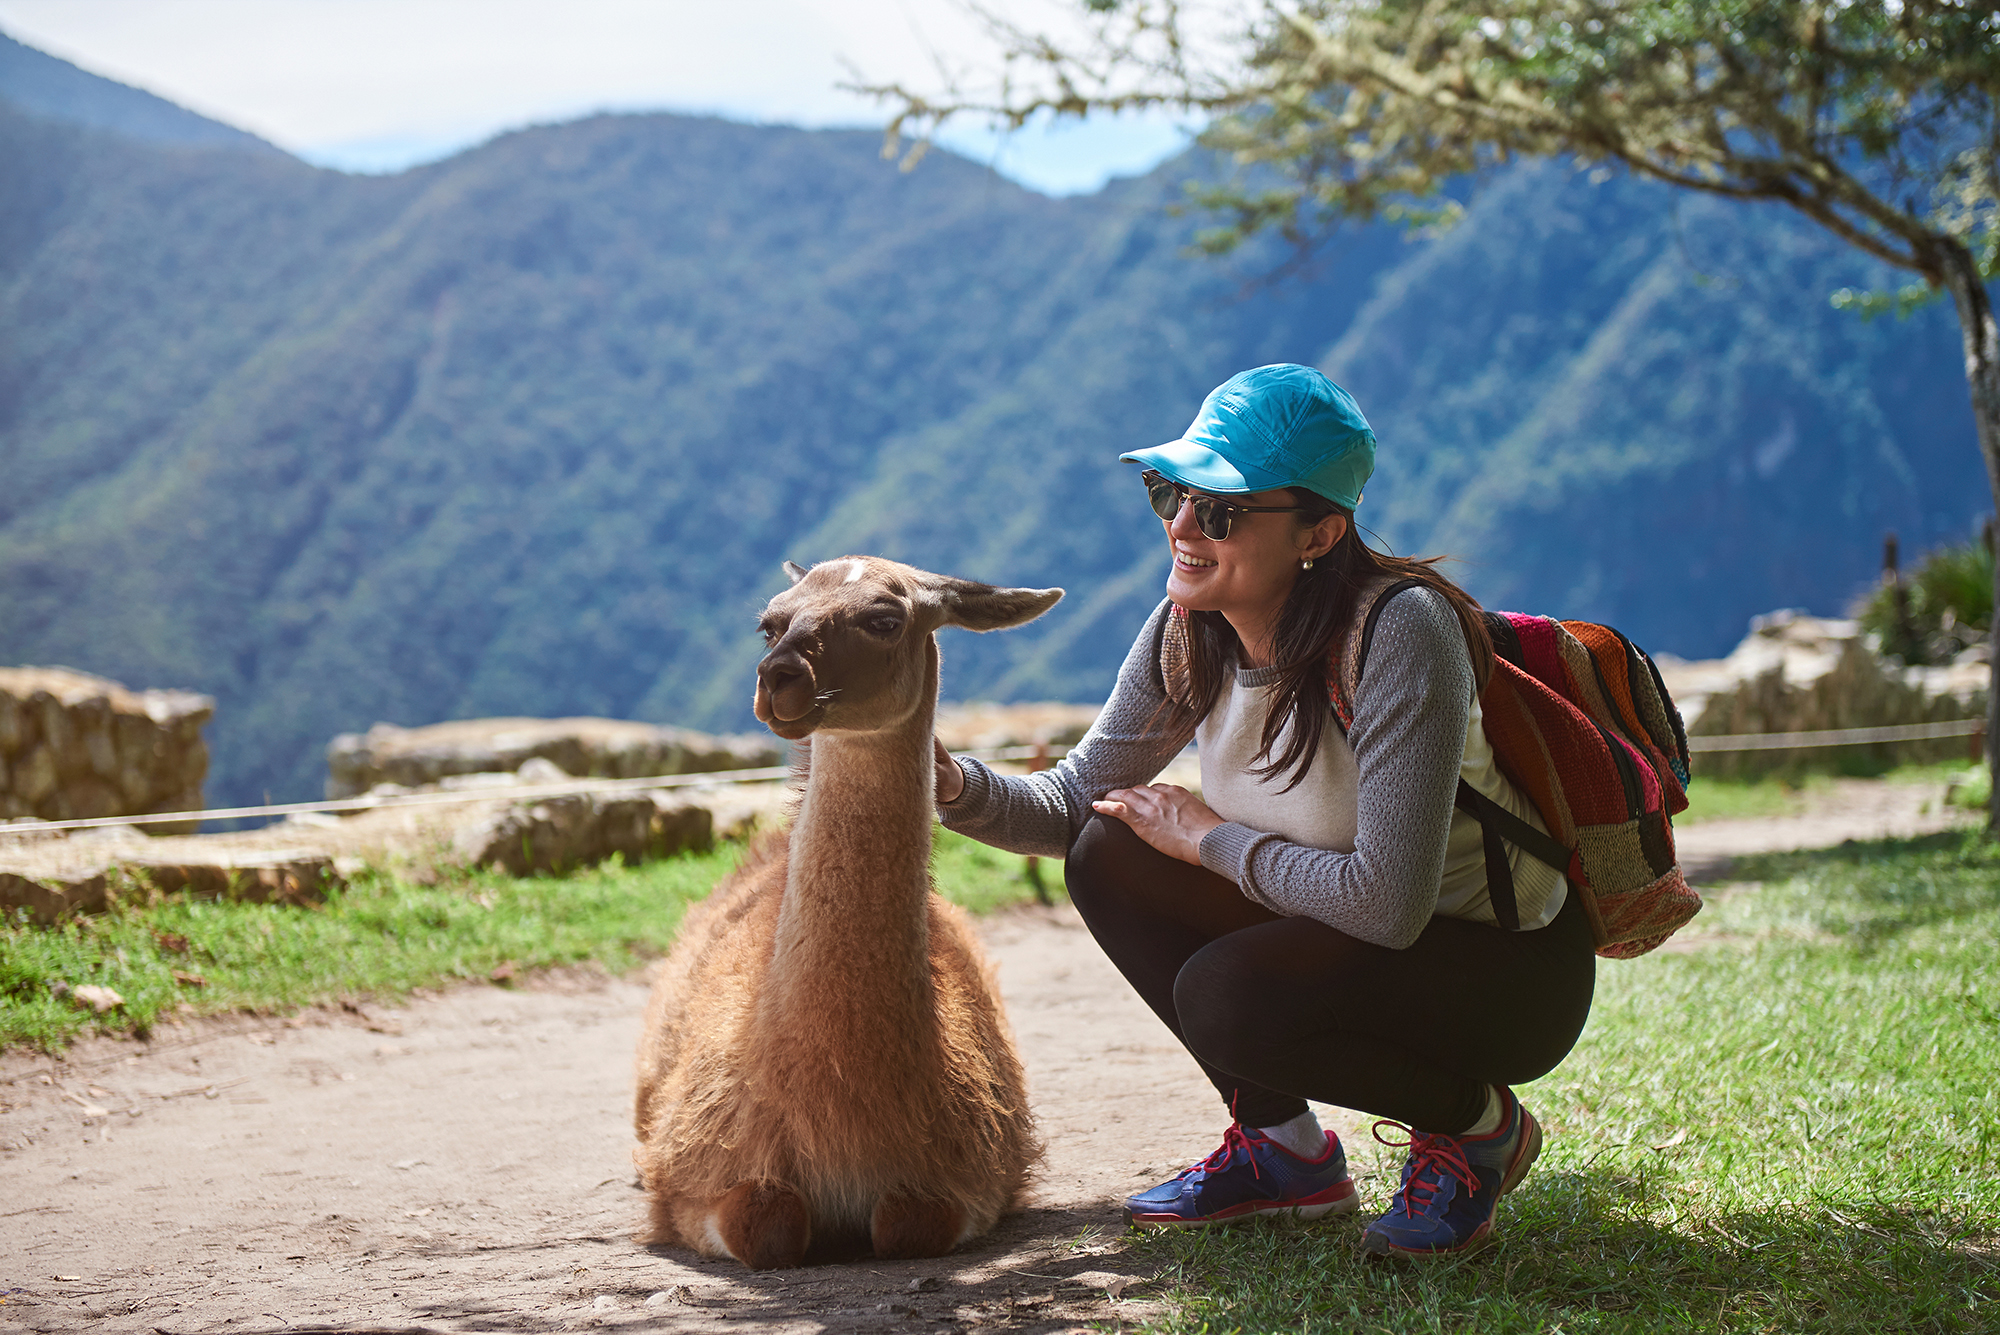 peru_cuzco_bigstock-Girl-_Traveller-Interact-With-L-232166932_resize.jpg